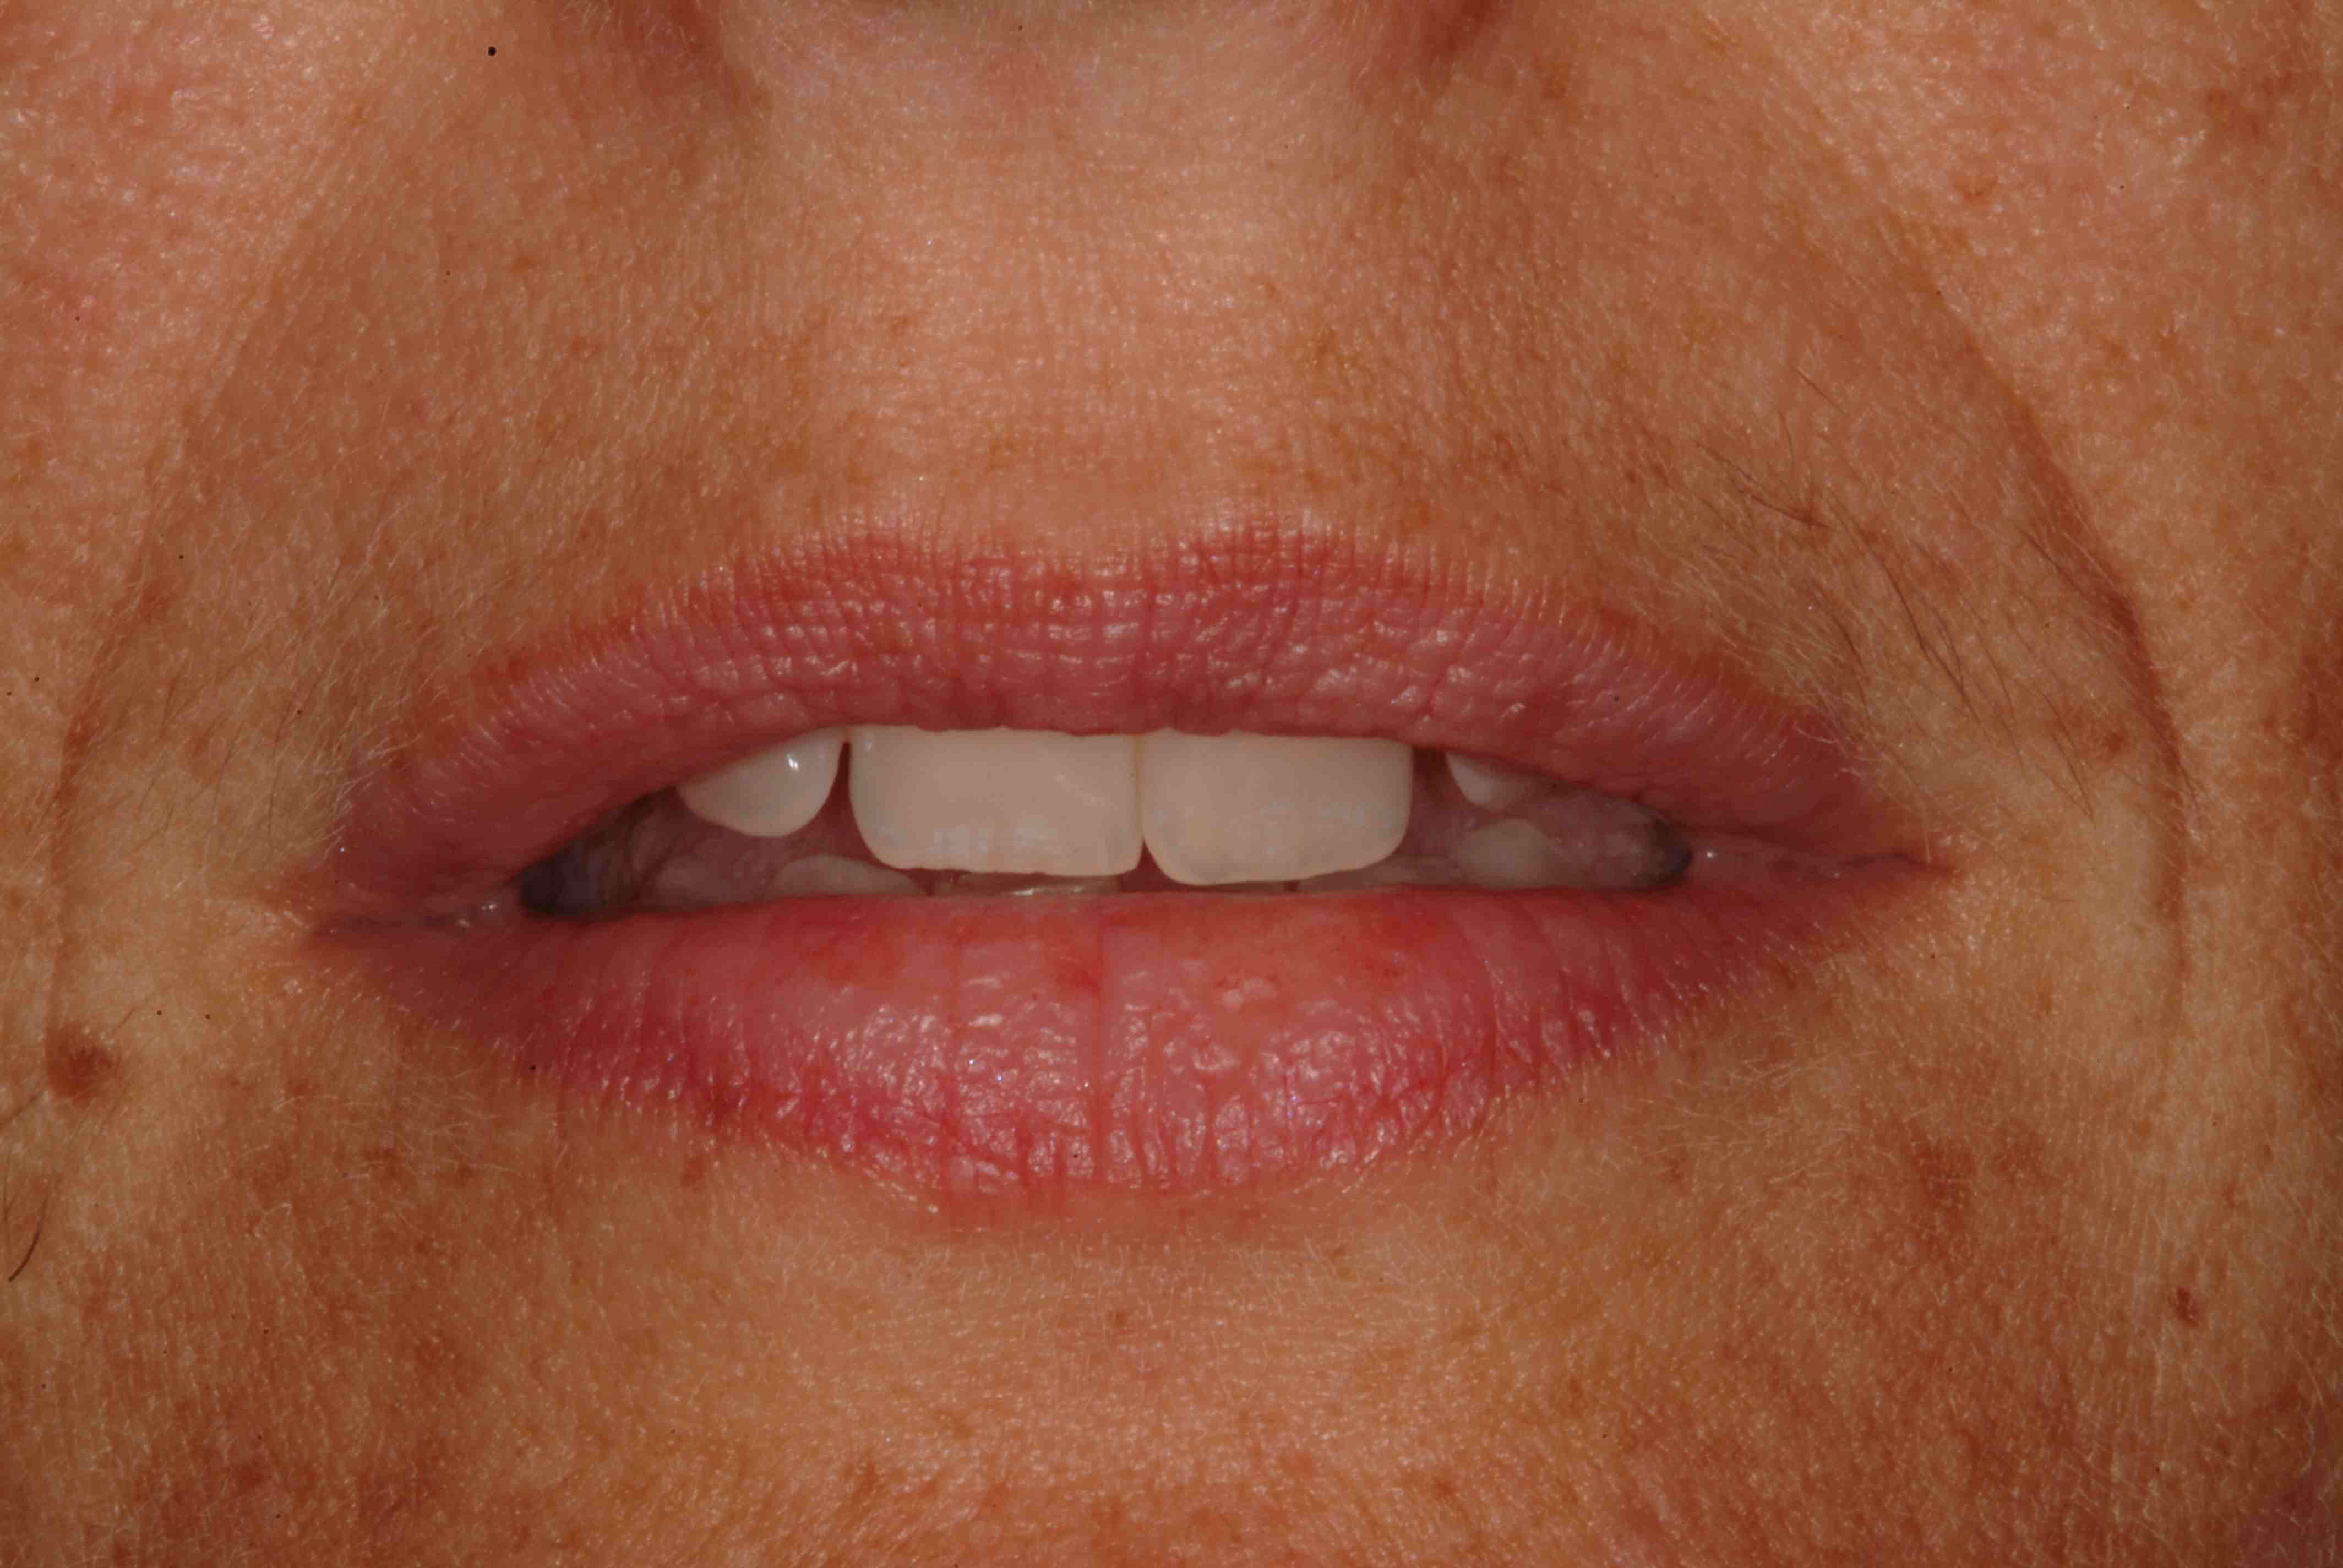 Is The Diagnosis a Hypermobile Lip?